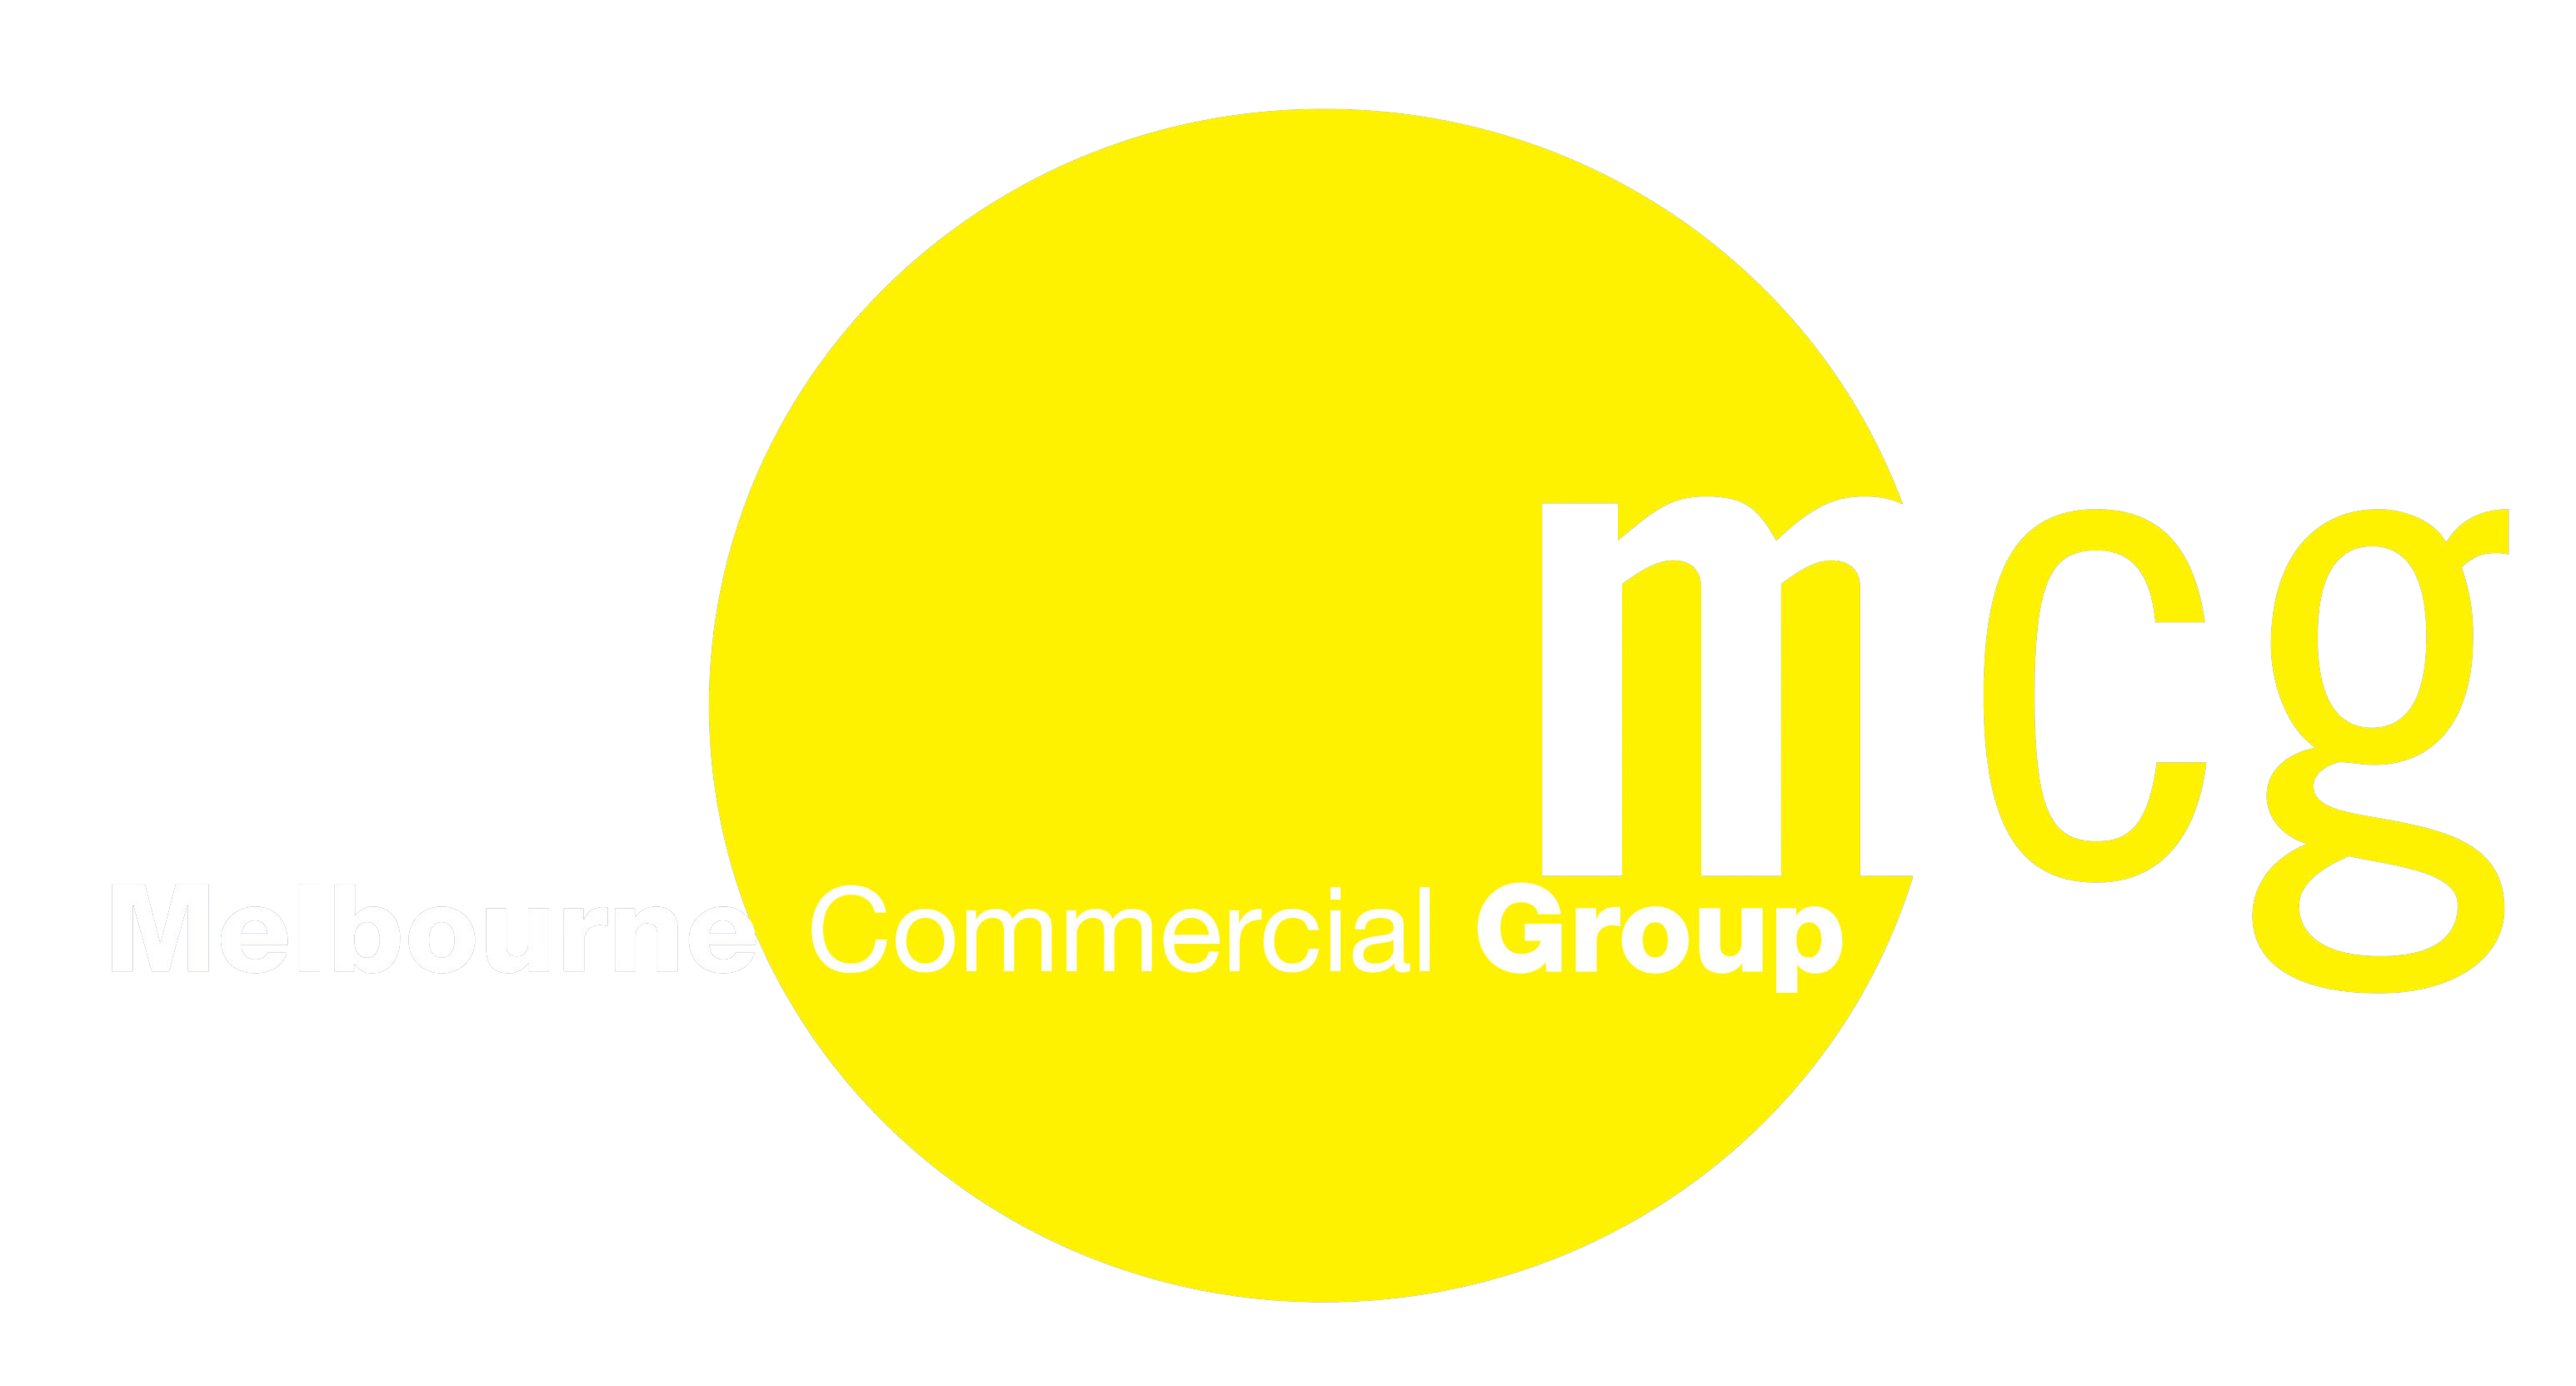 Melbourne Commercial Group